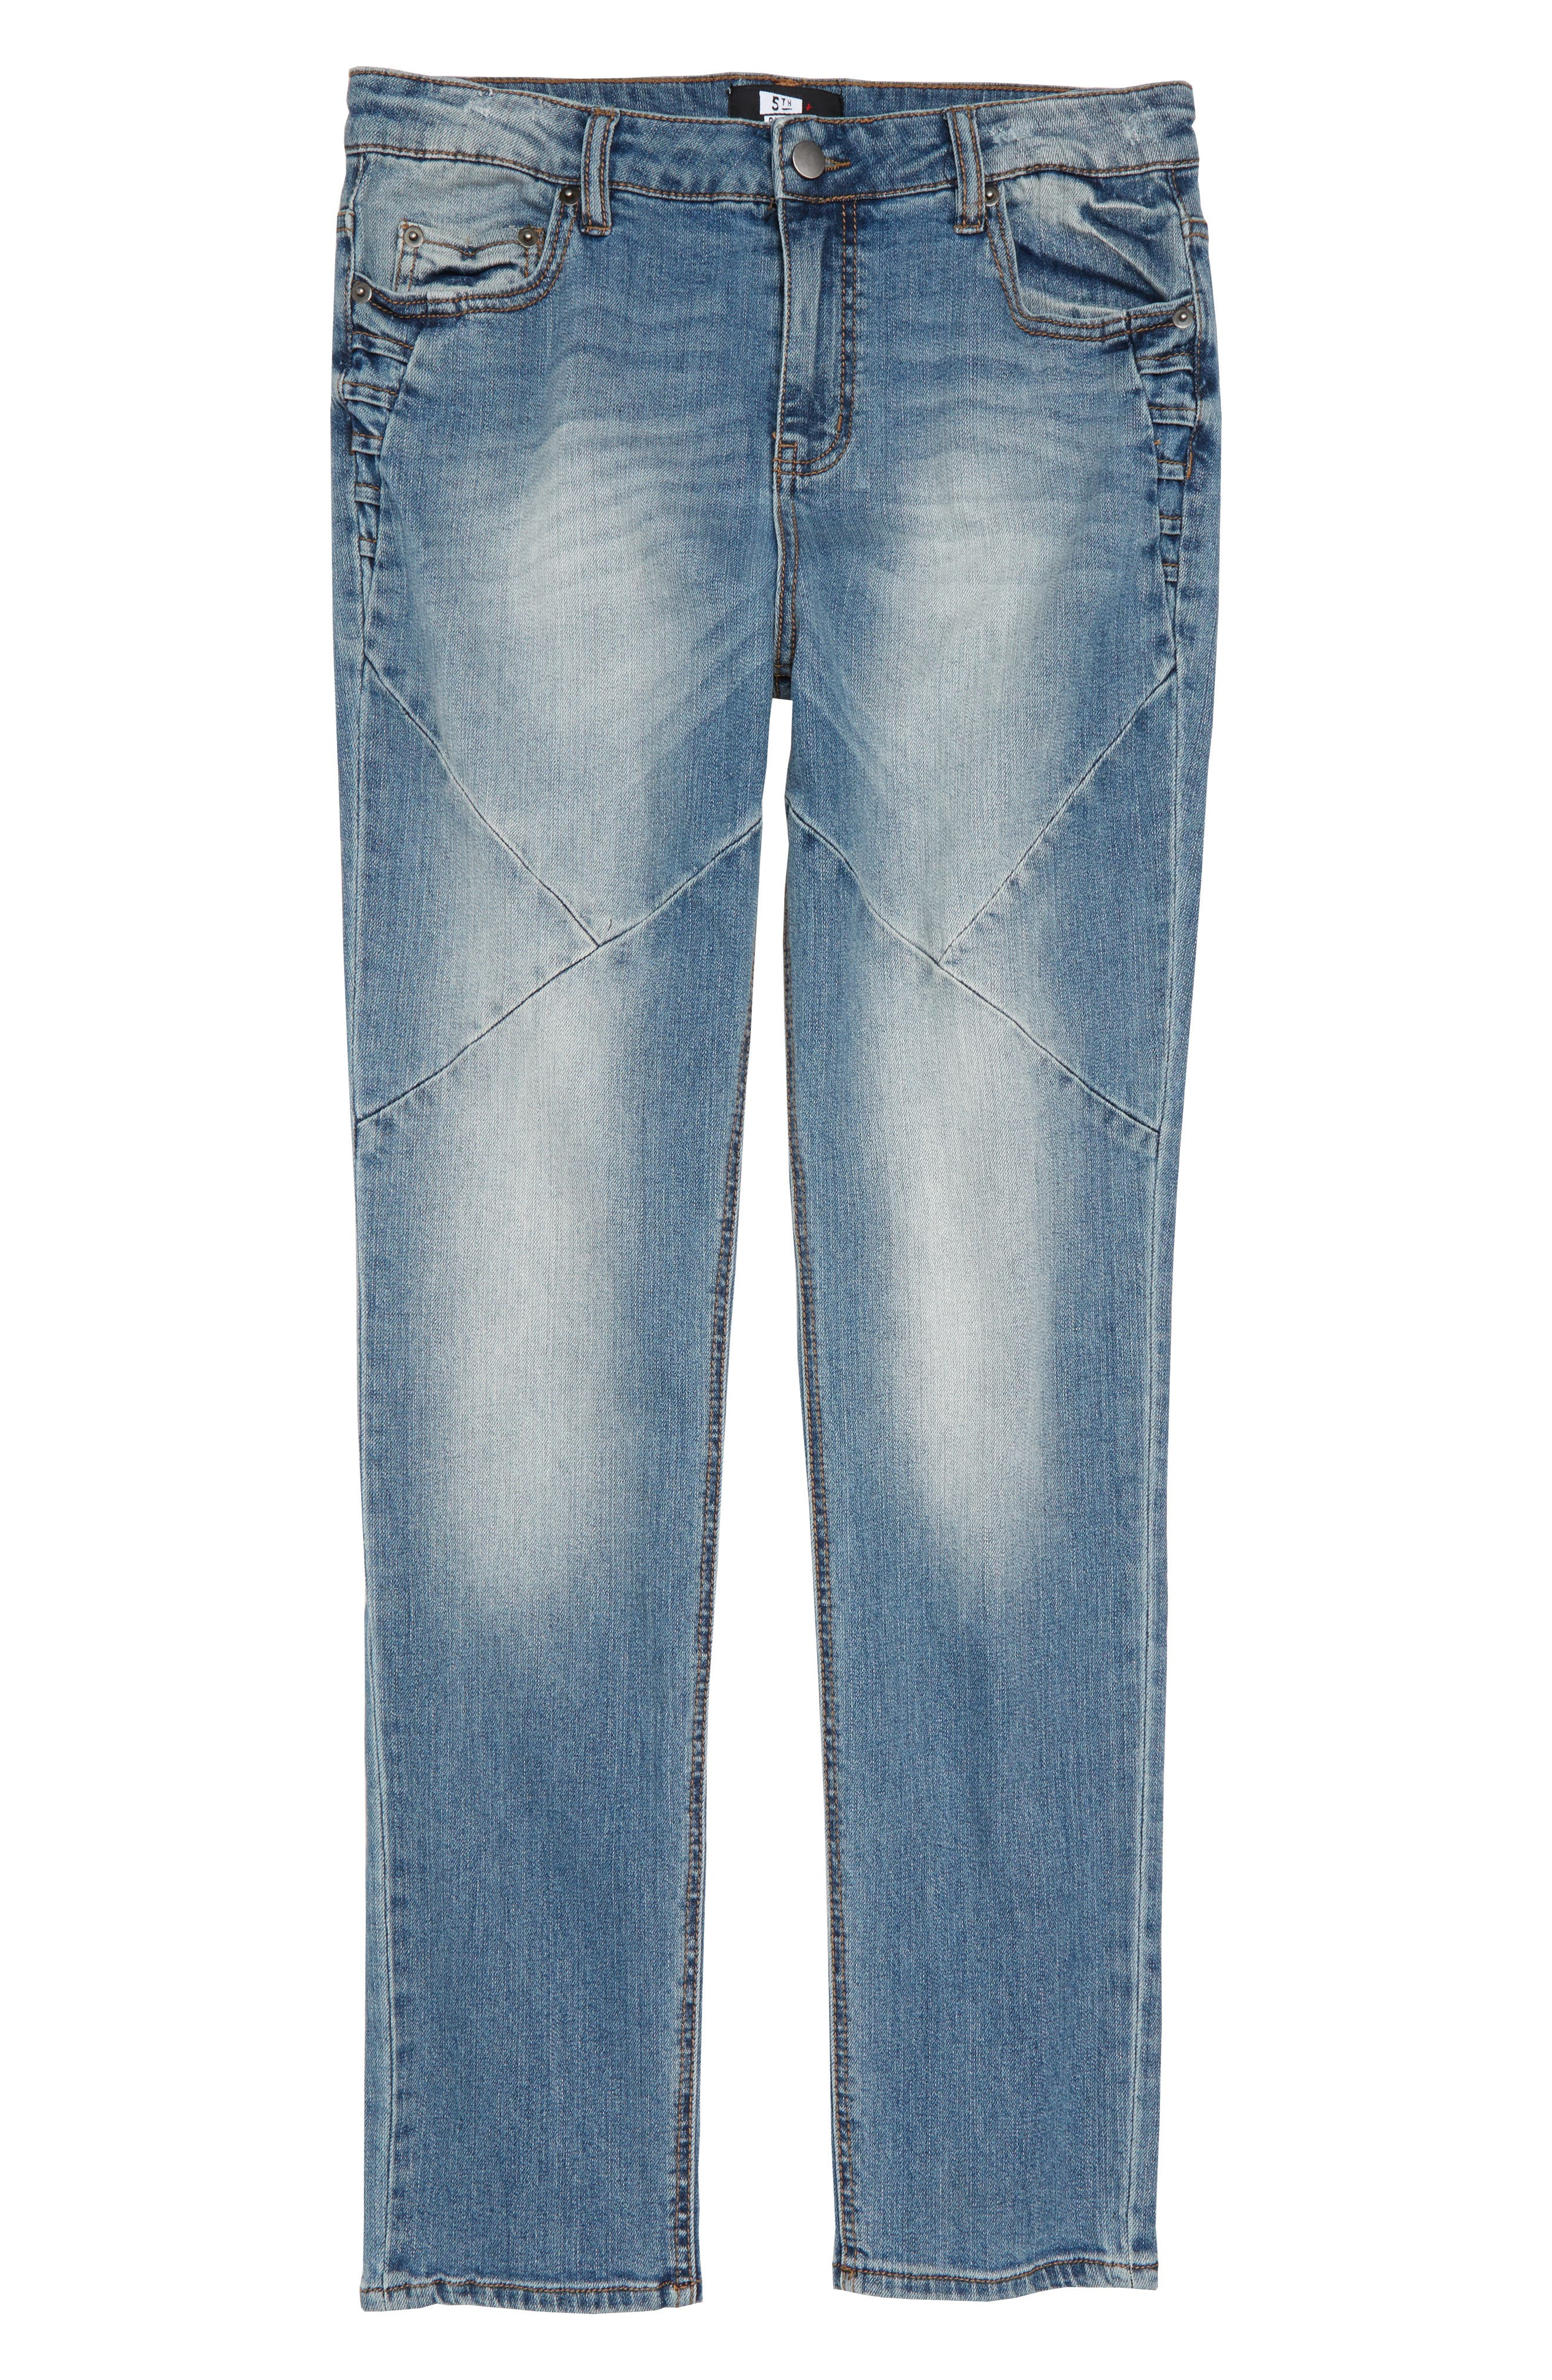 Elwood Pieced Skinny Jeans,                         Main,                         color, 424